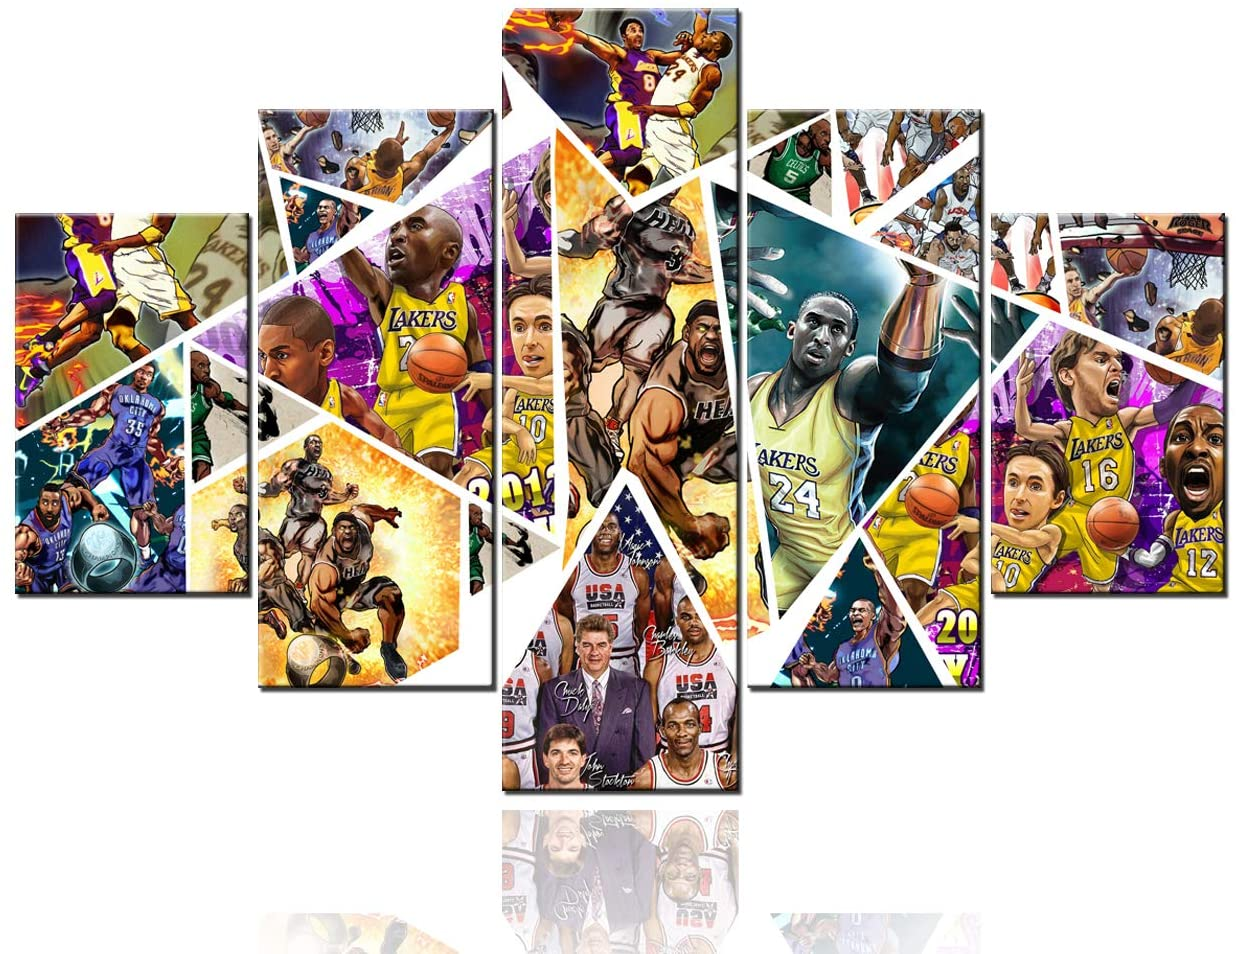 Extra Large Wall Art Anime Kobe Bryant Pictures Los Angeles Lakers MVP Paintings 5 Pcs/Multi Panel Canvas Artwrok Home Decor for Living Room Framed Ready to Hang Posters and Prints(60Wx40H)